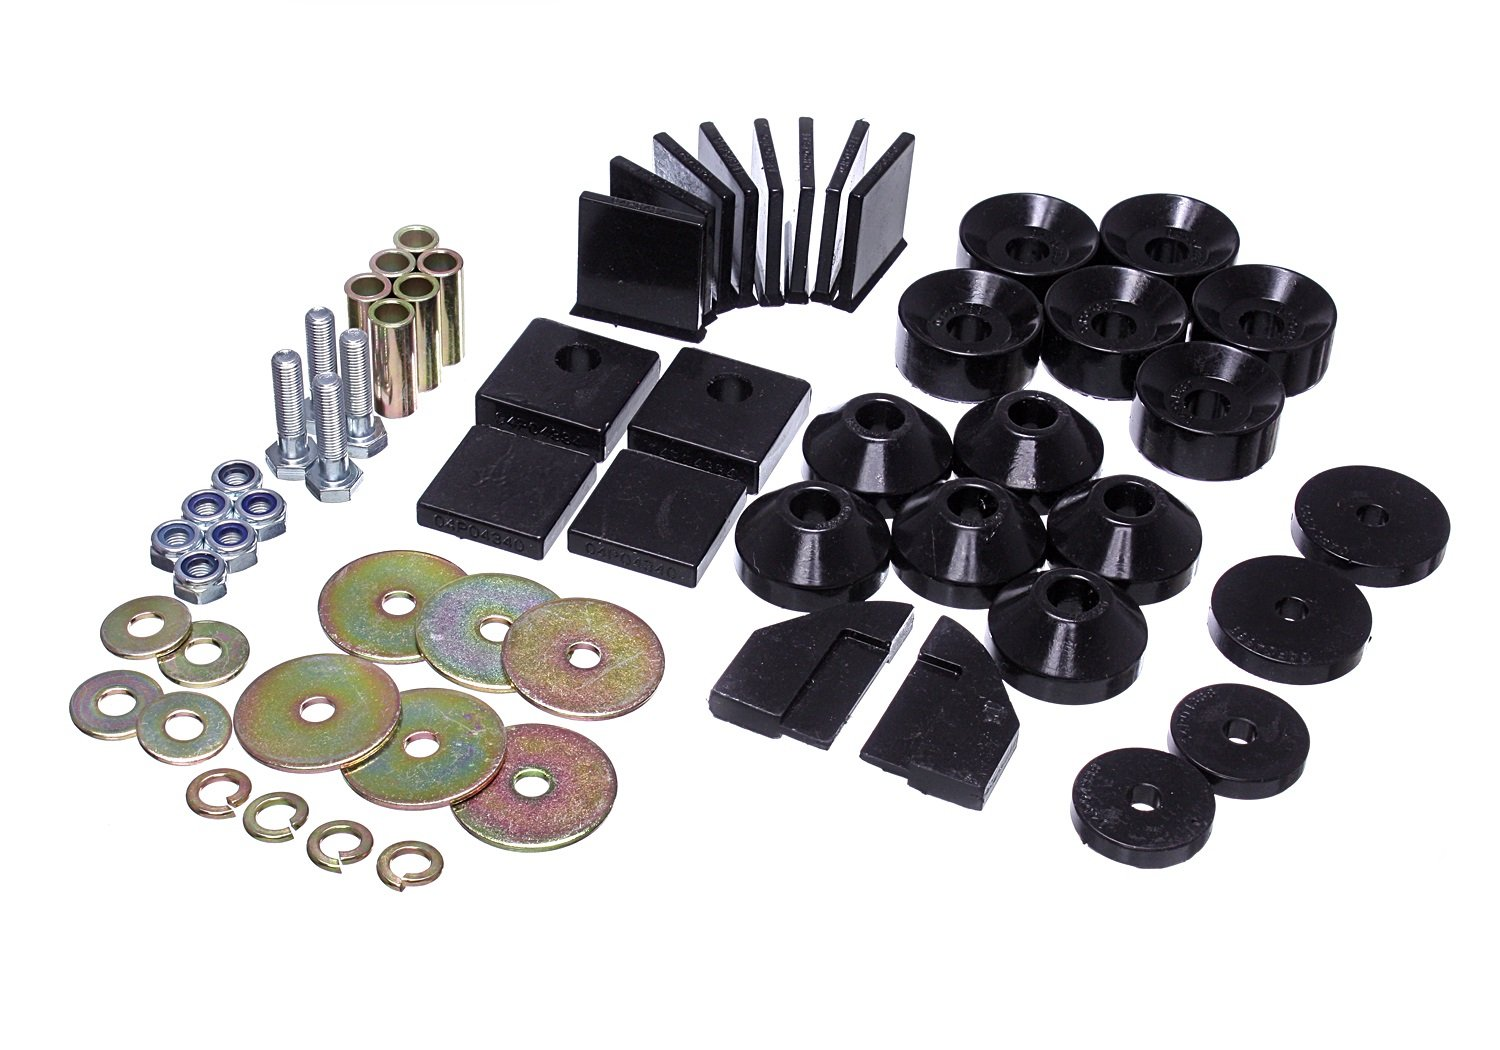 Energy Suspension 14101G Chassis Bushing 1.4101G